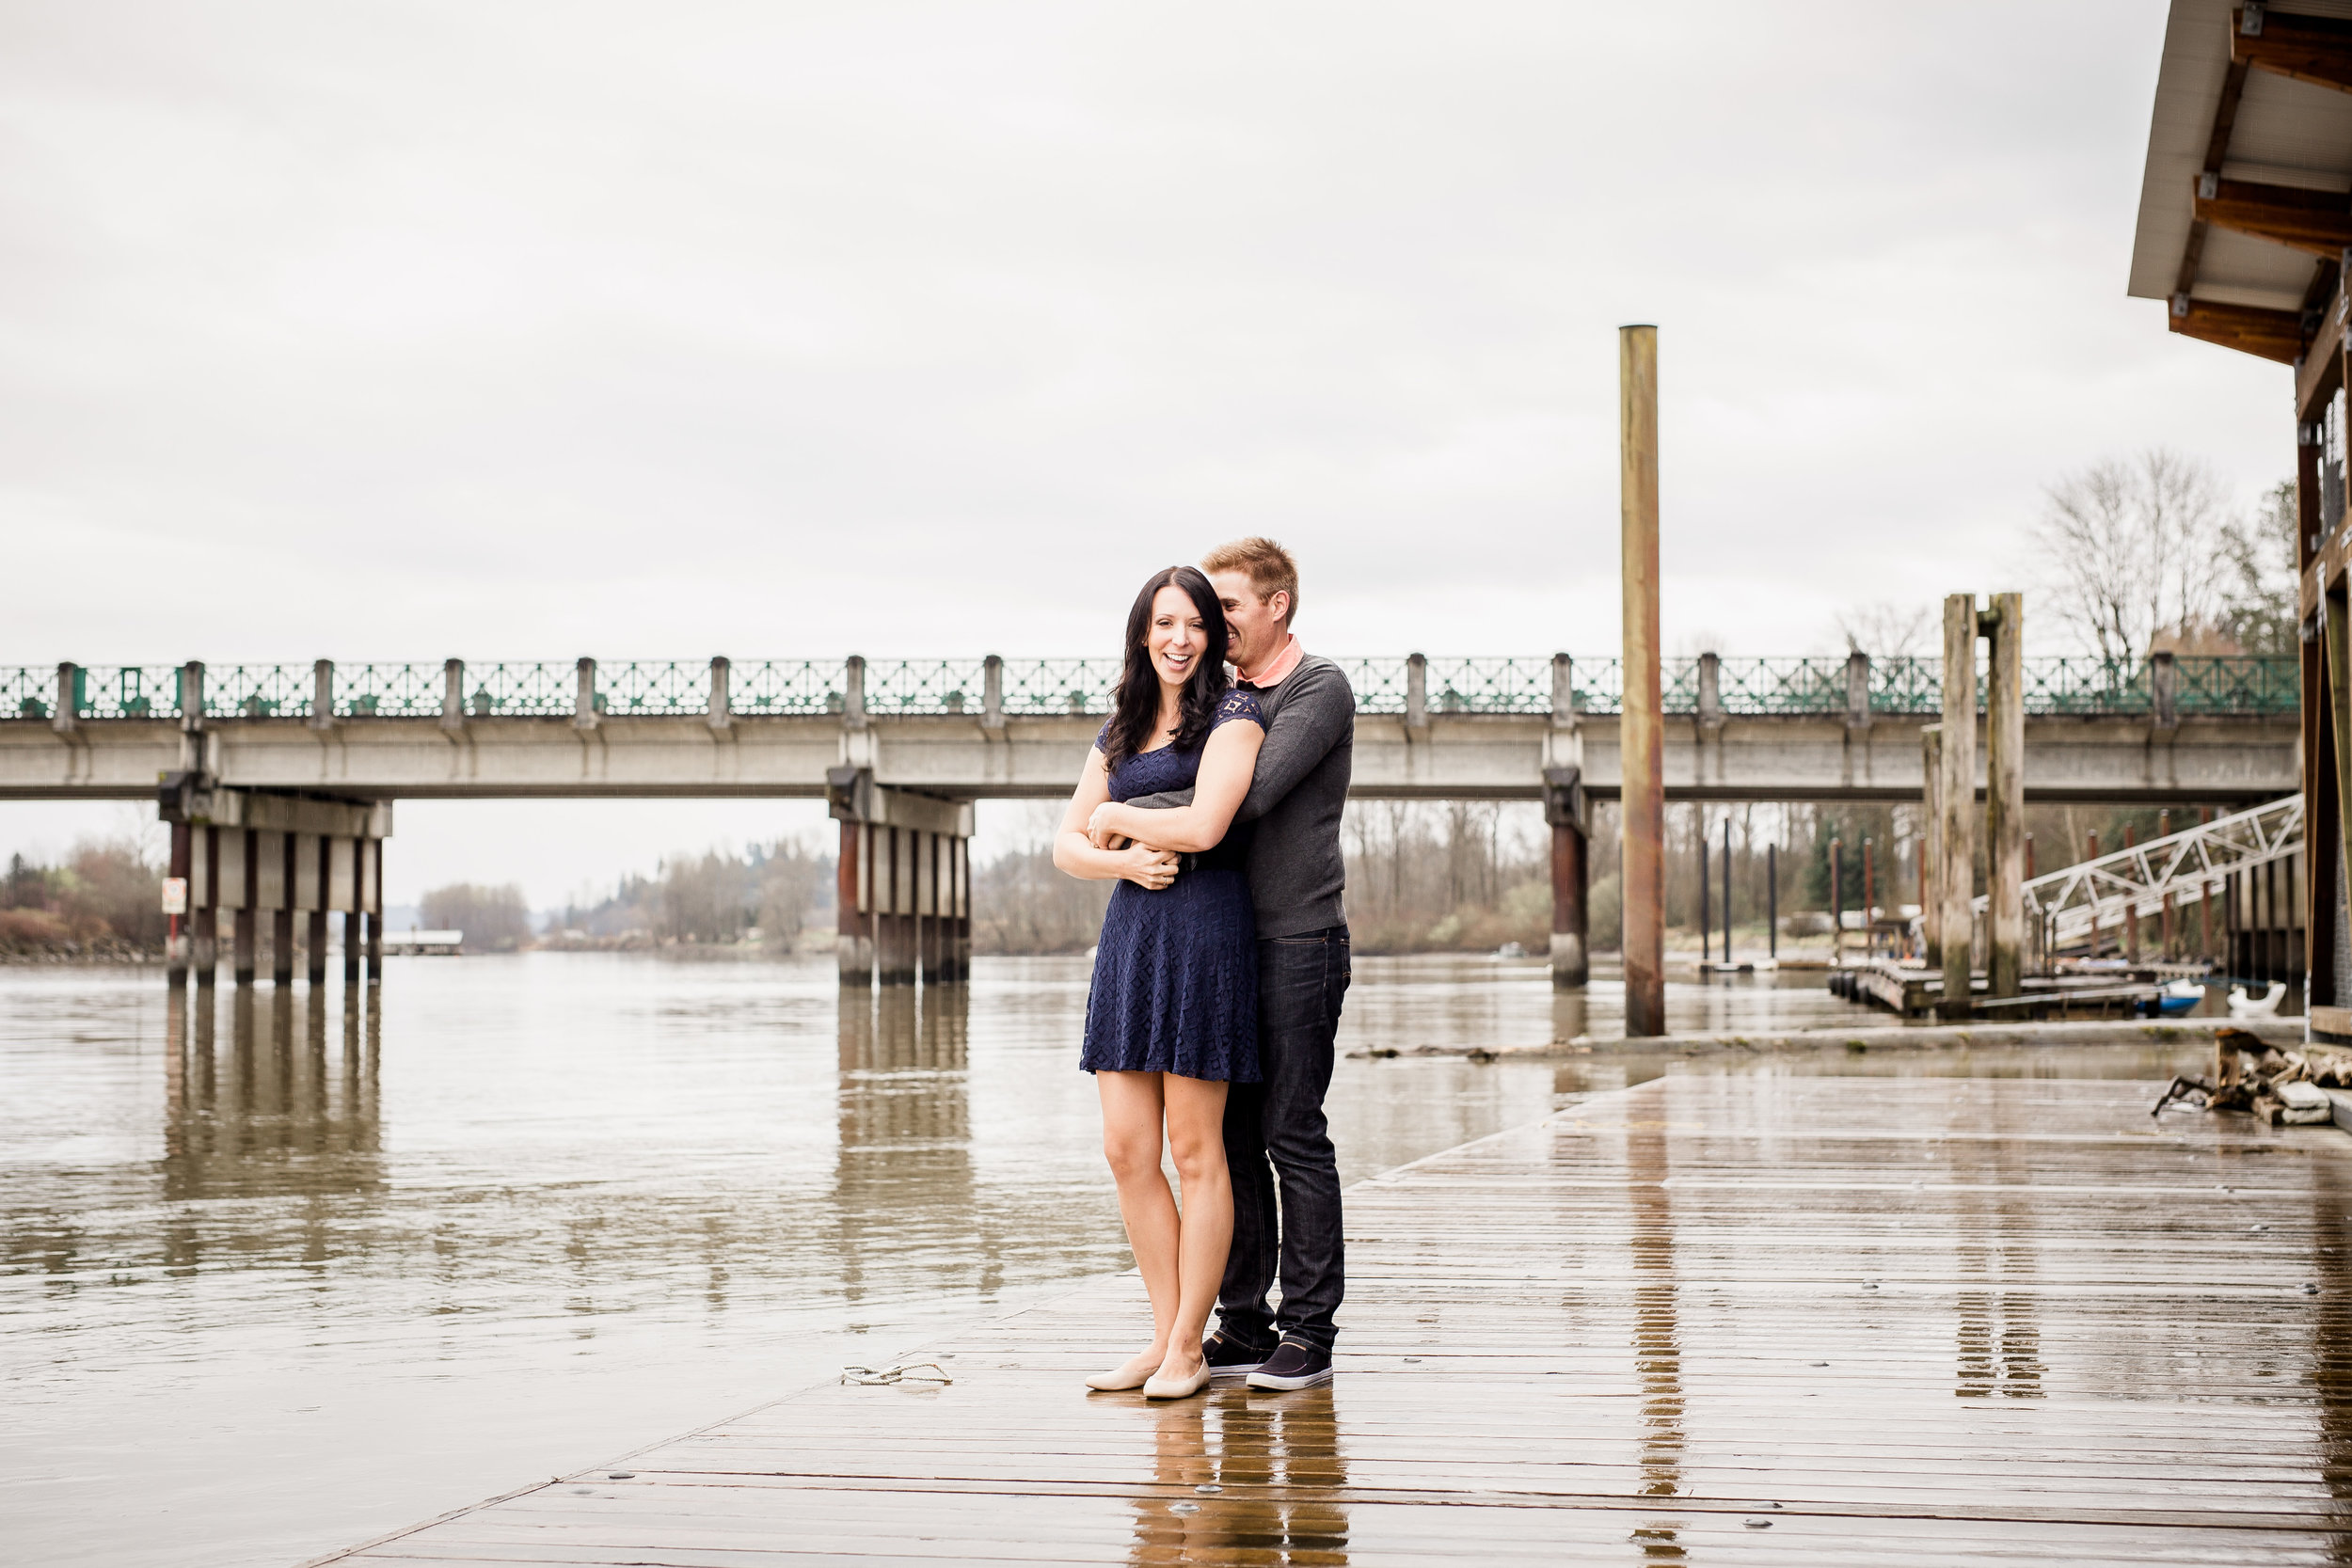 Langley Photographer, Fort Langley Engagement, Amanda Coldicutt Photography, Langley Wedding Photographer